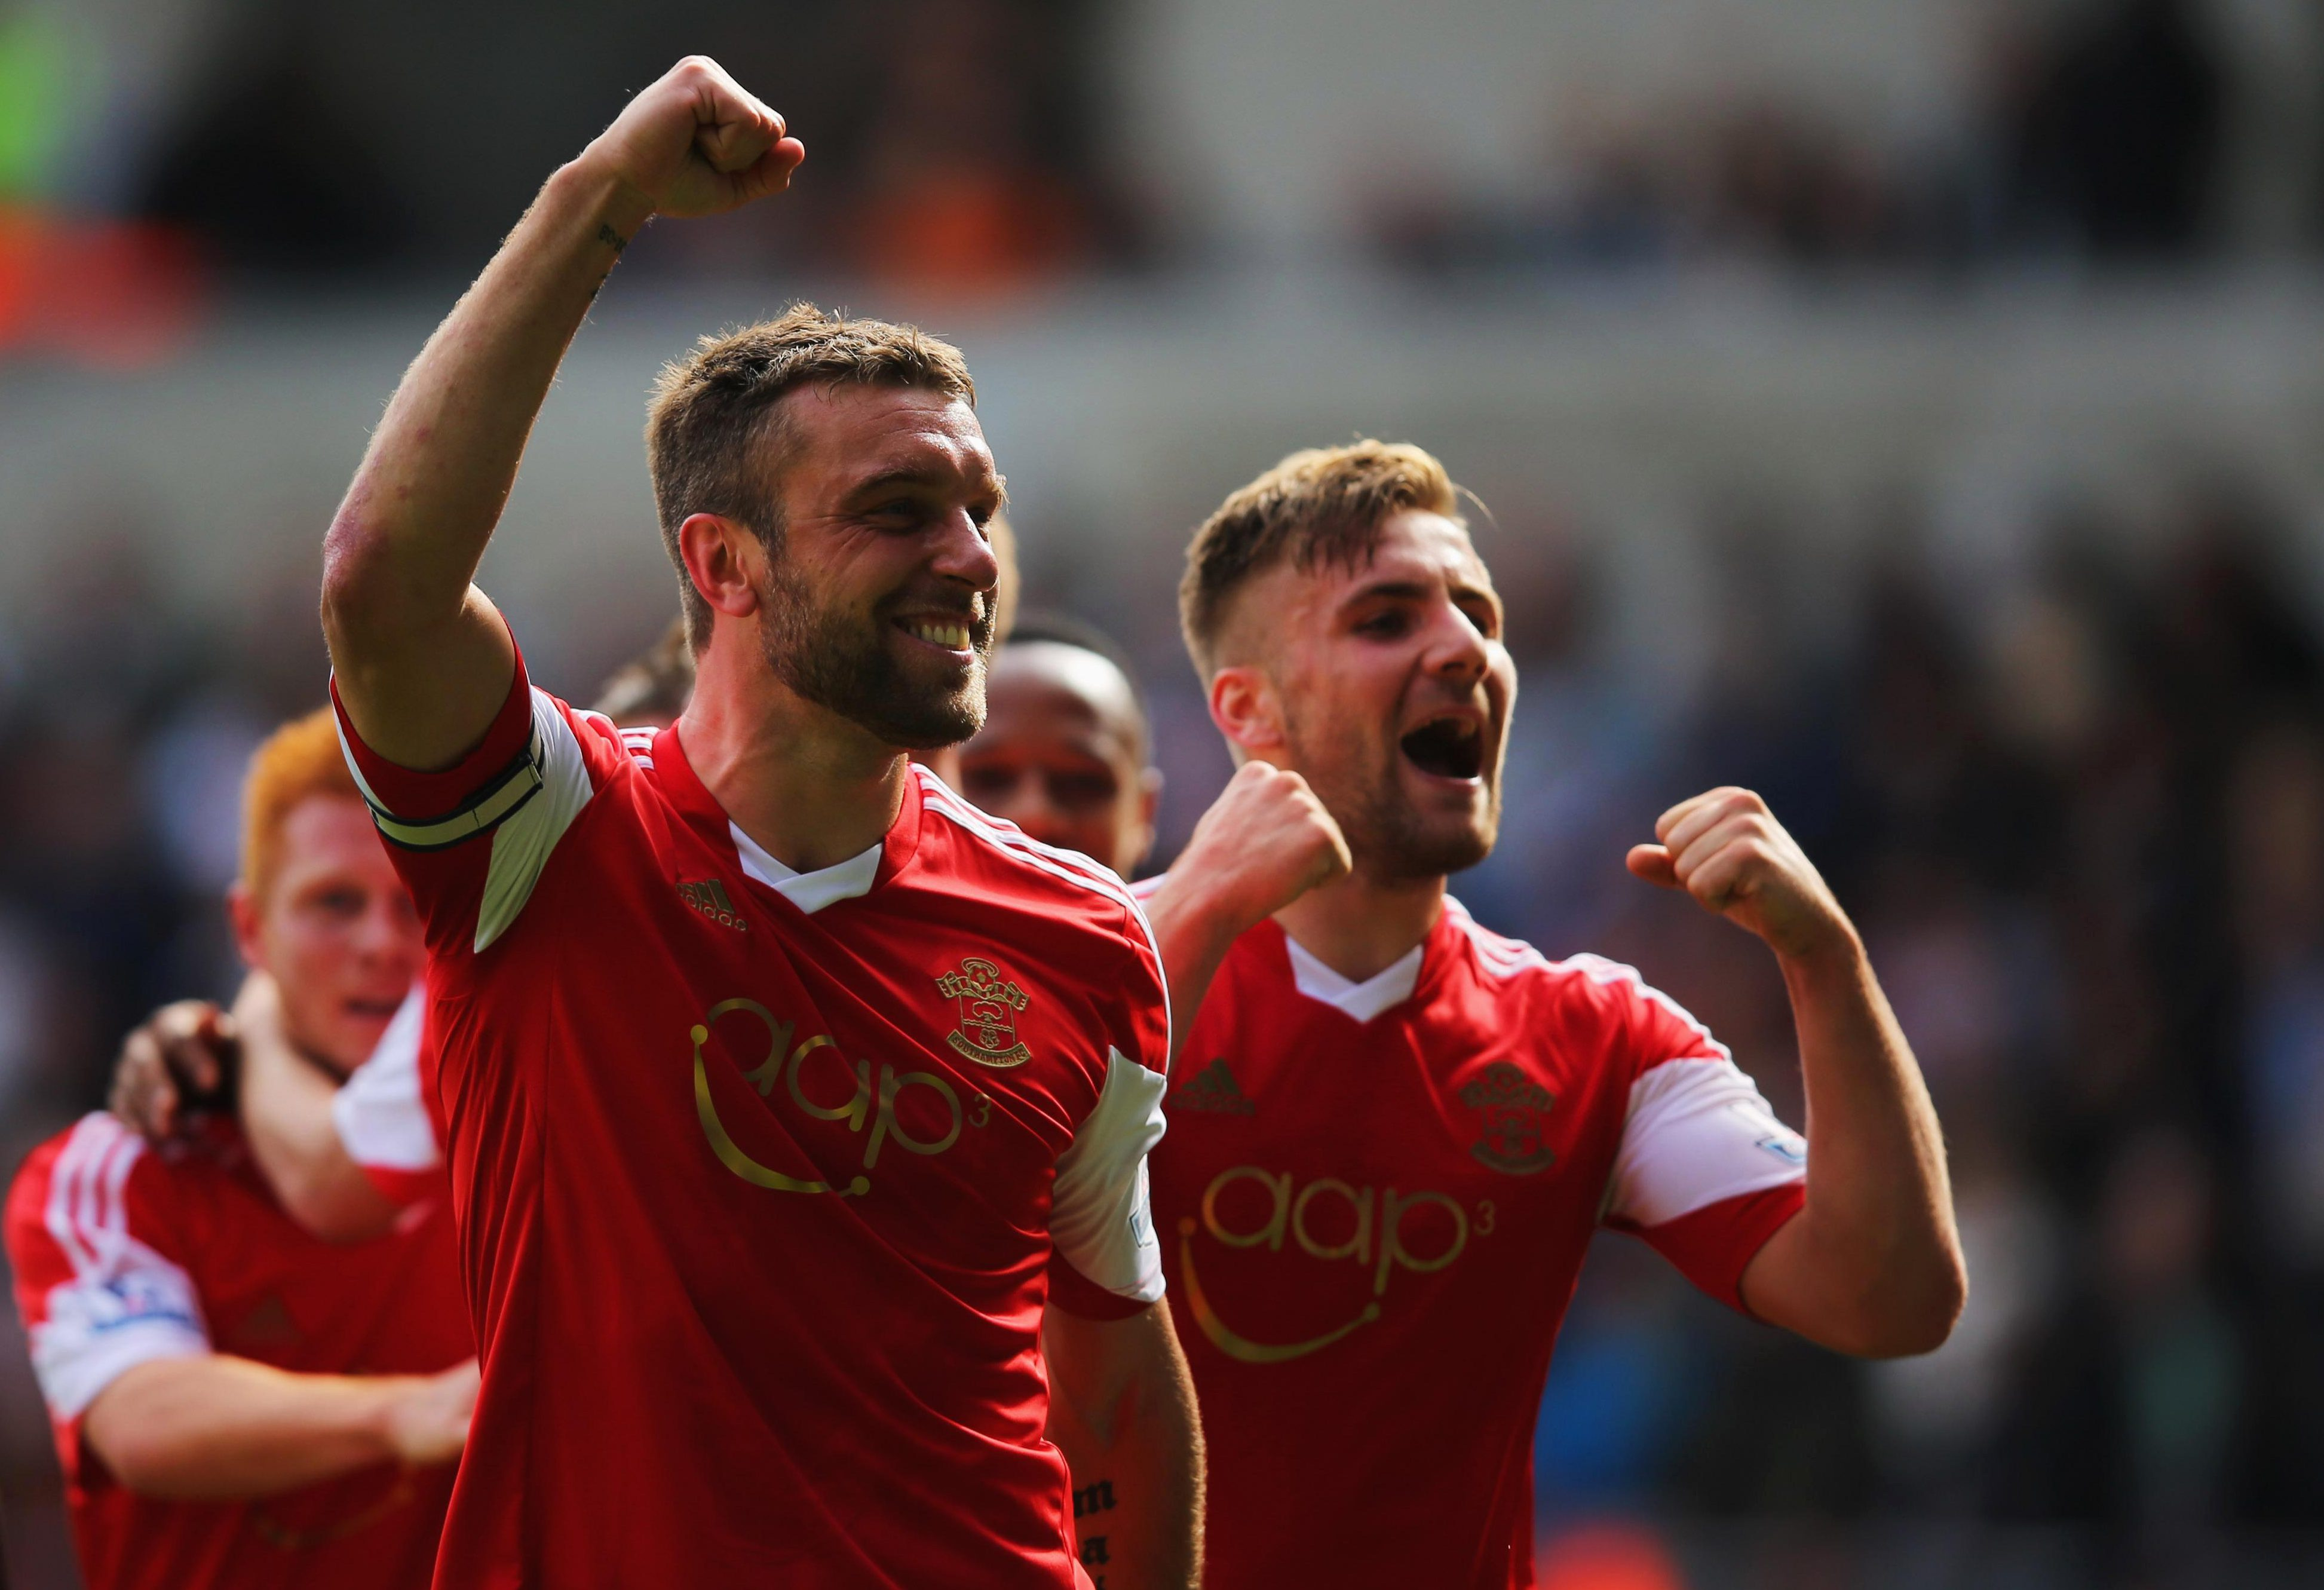 Lambert notched 117 goals during a hugely successful spell with Southampton